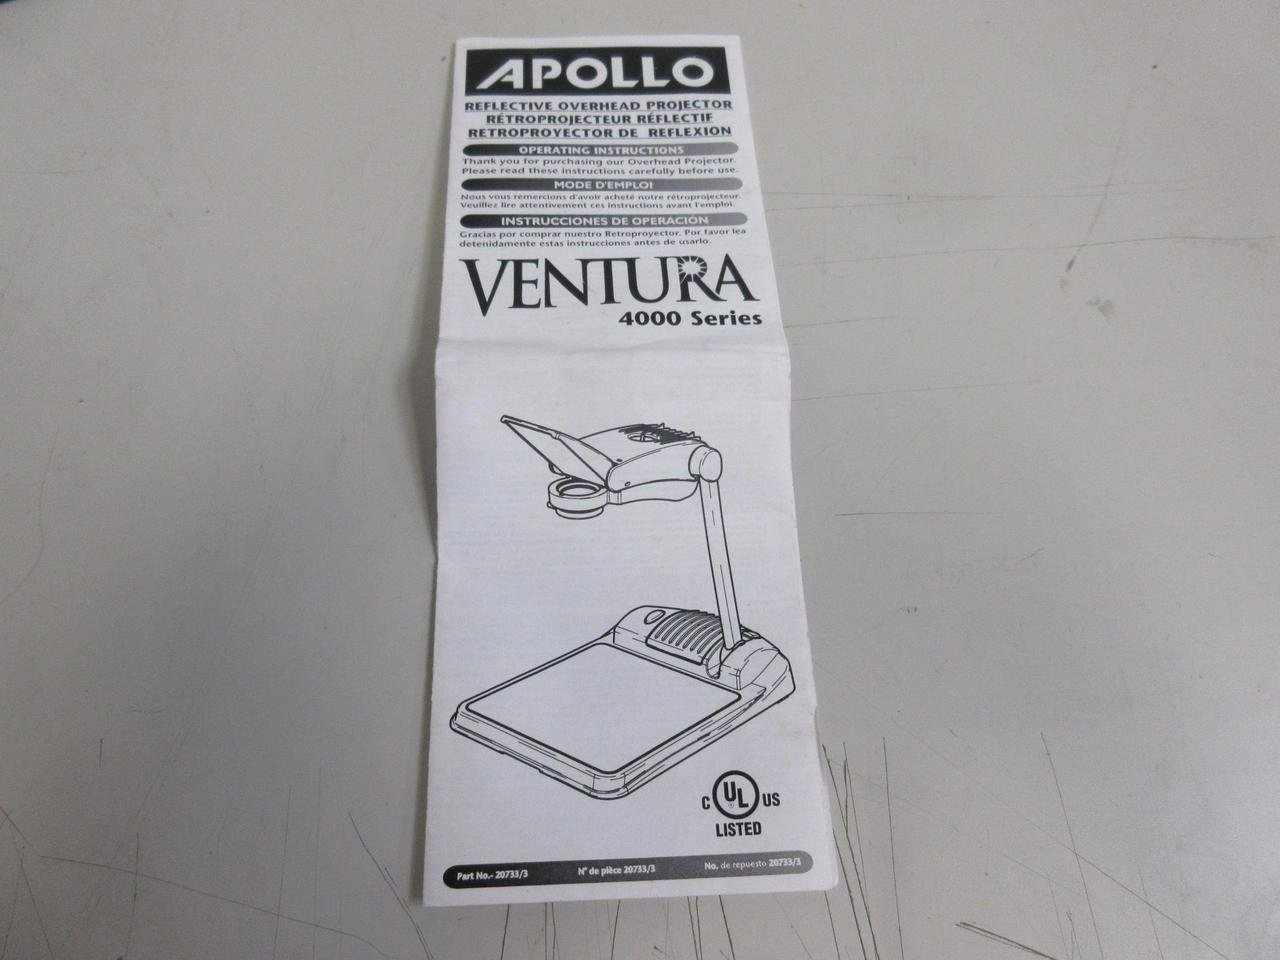 Amazon.com: Apollo – Ventura 4000 Series, 20733/3 ...